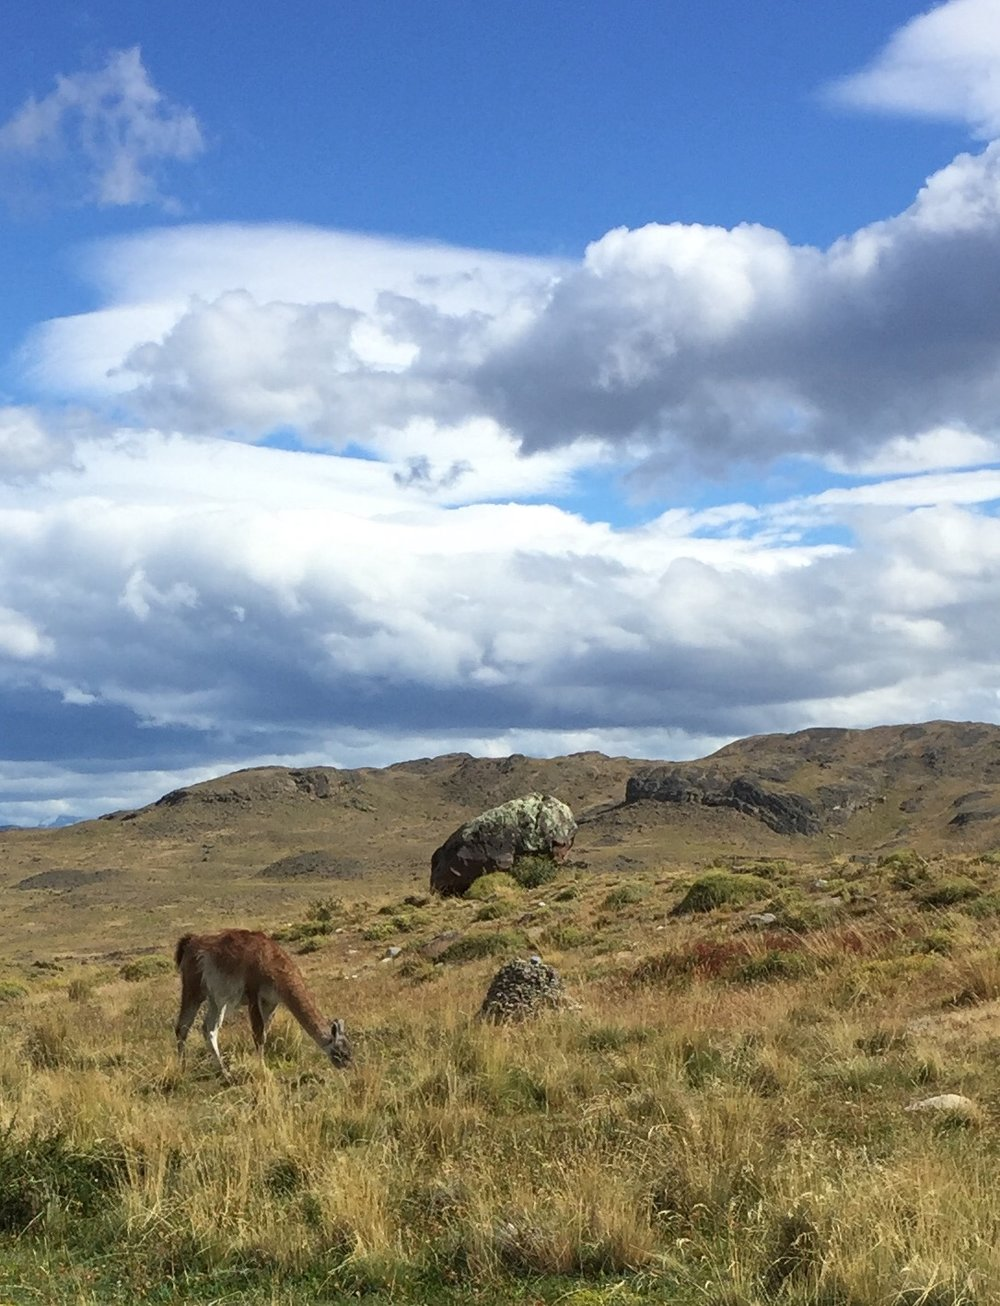 Torres de Paine National Park in Patagonia (Argentina) with native vicuña in the foreground. Photo by Betsy Herbert 2016